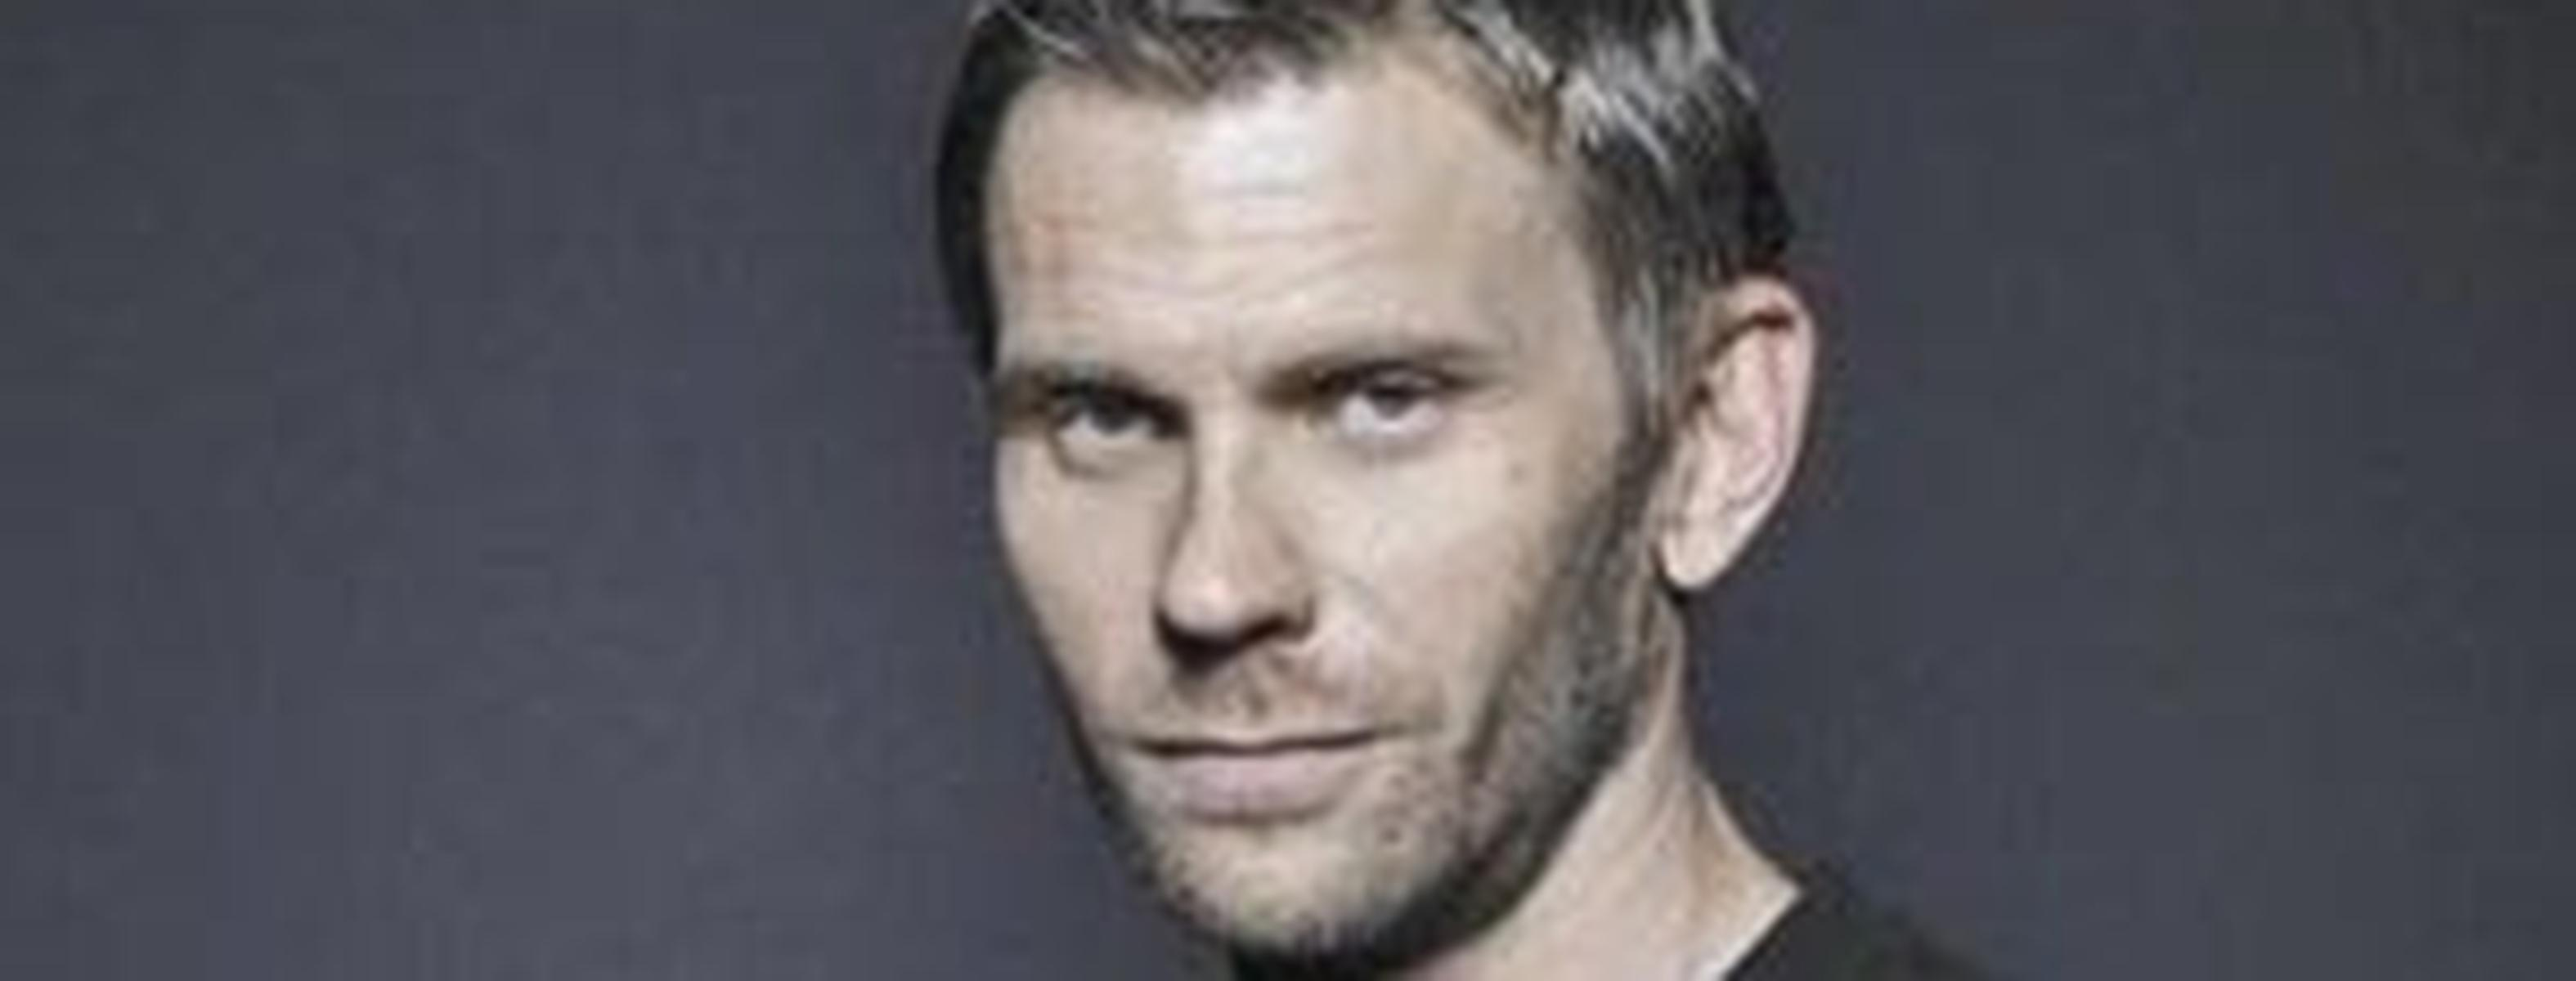 Mark Pellegrino: American actor, a typical performer of secondary roles